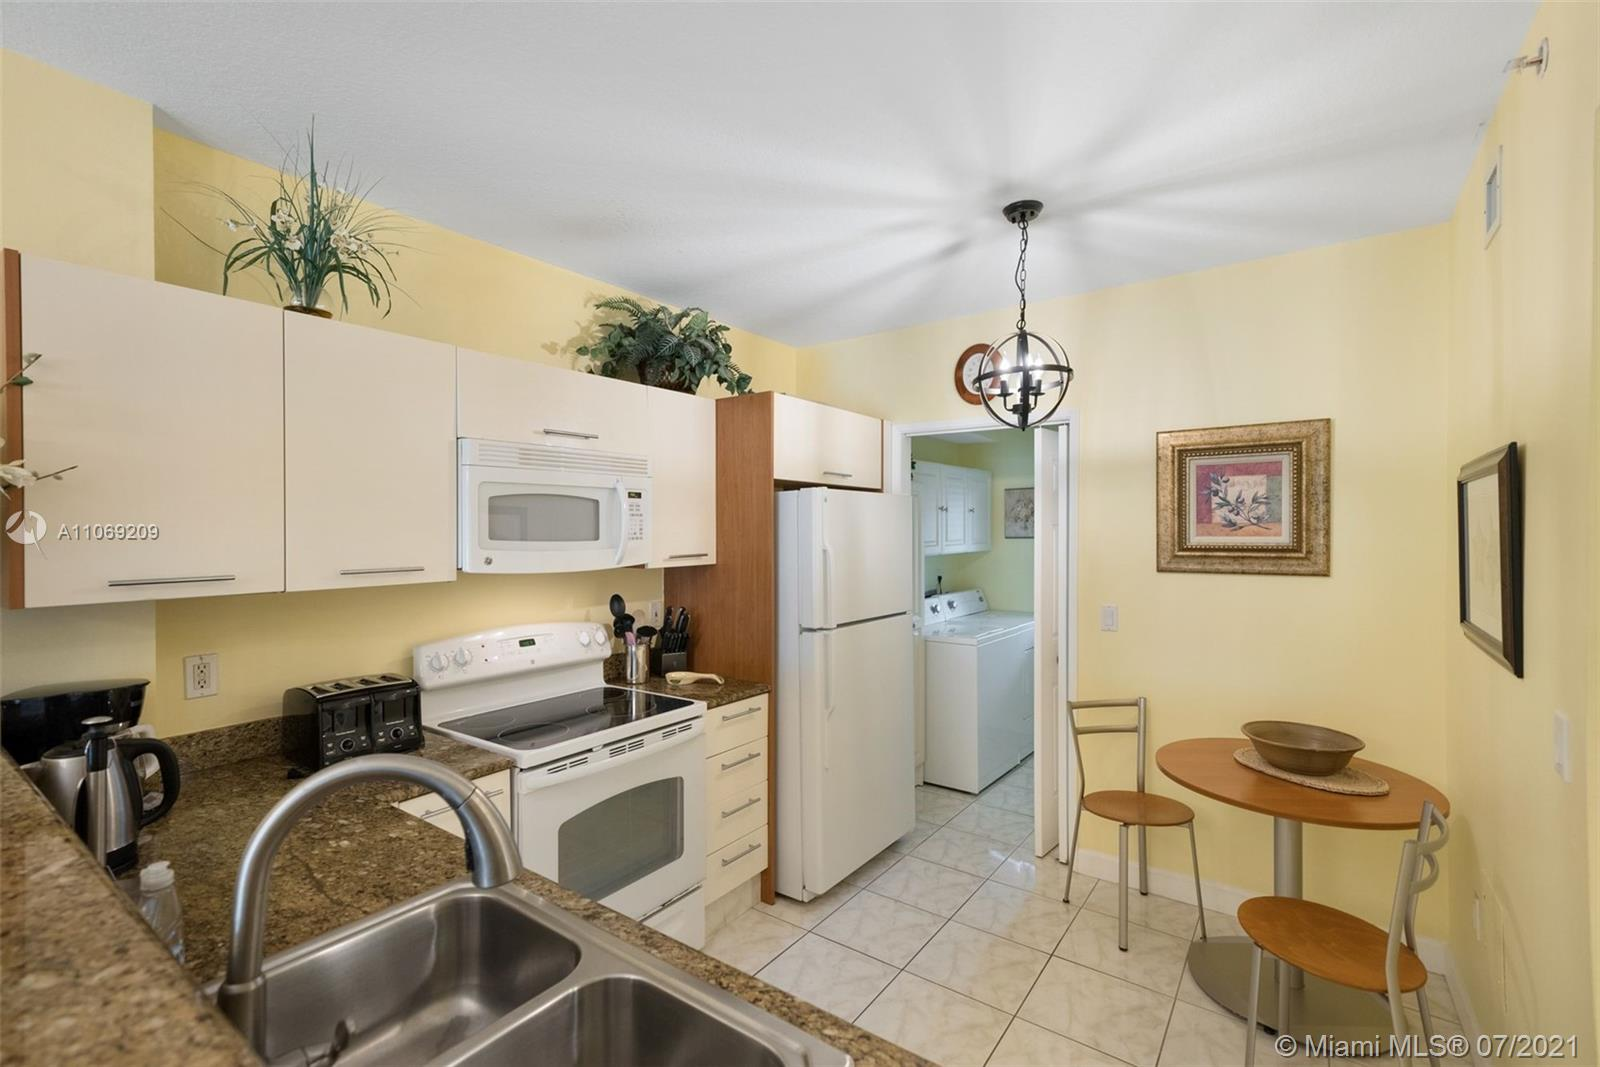 OPENED KITCHEN WITH LAUNDRY ROOM